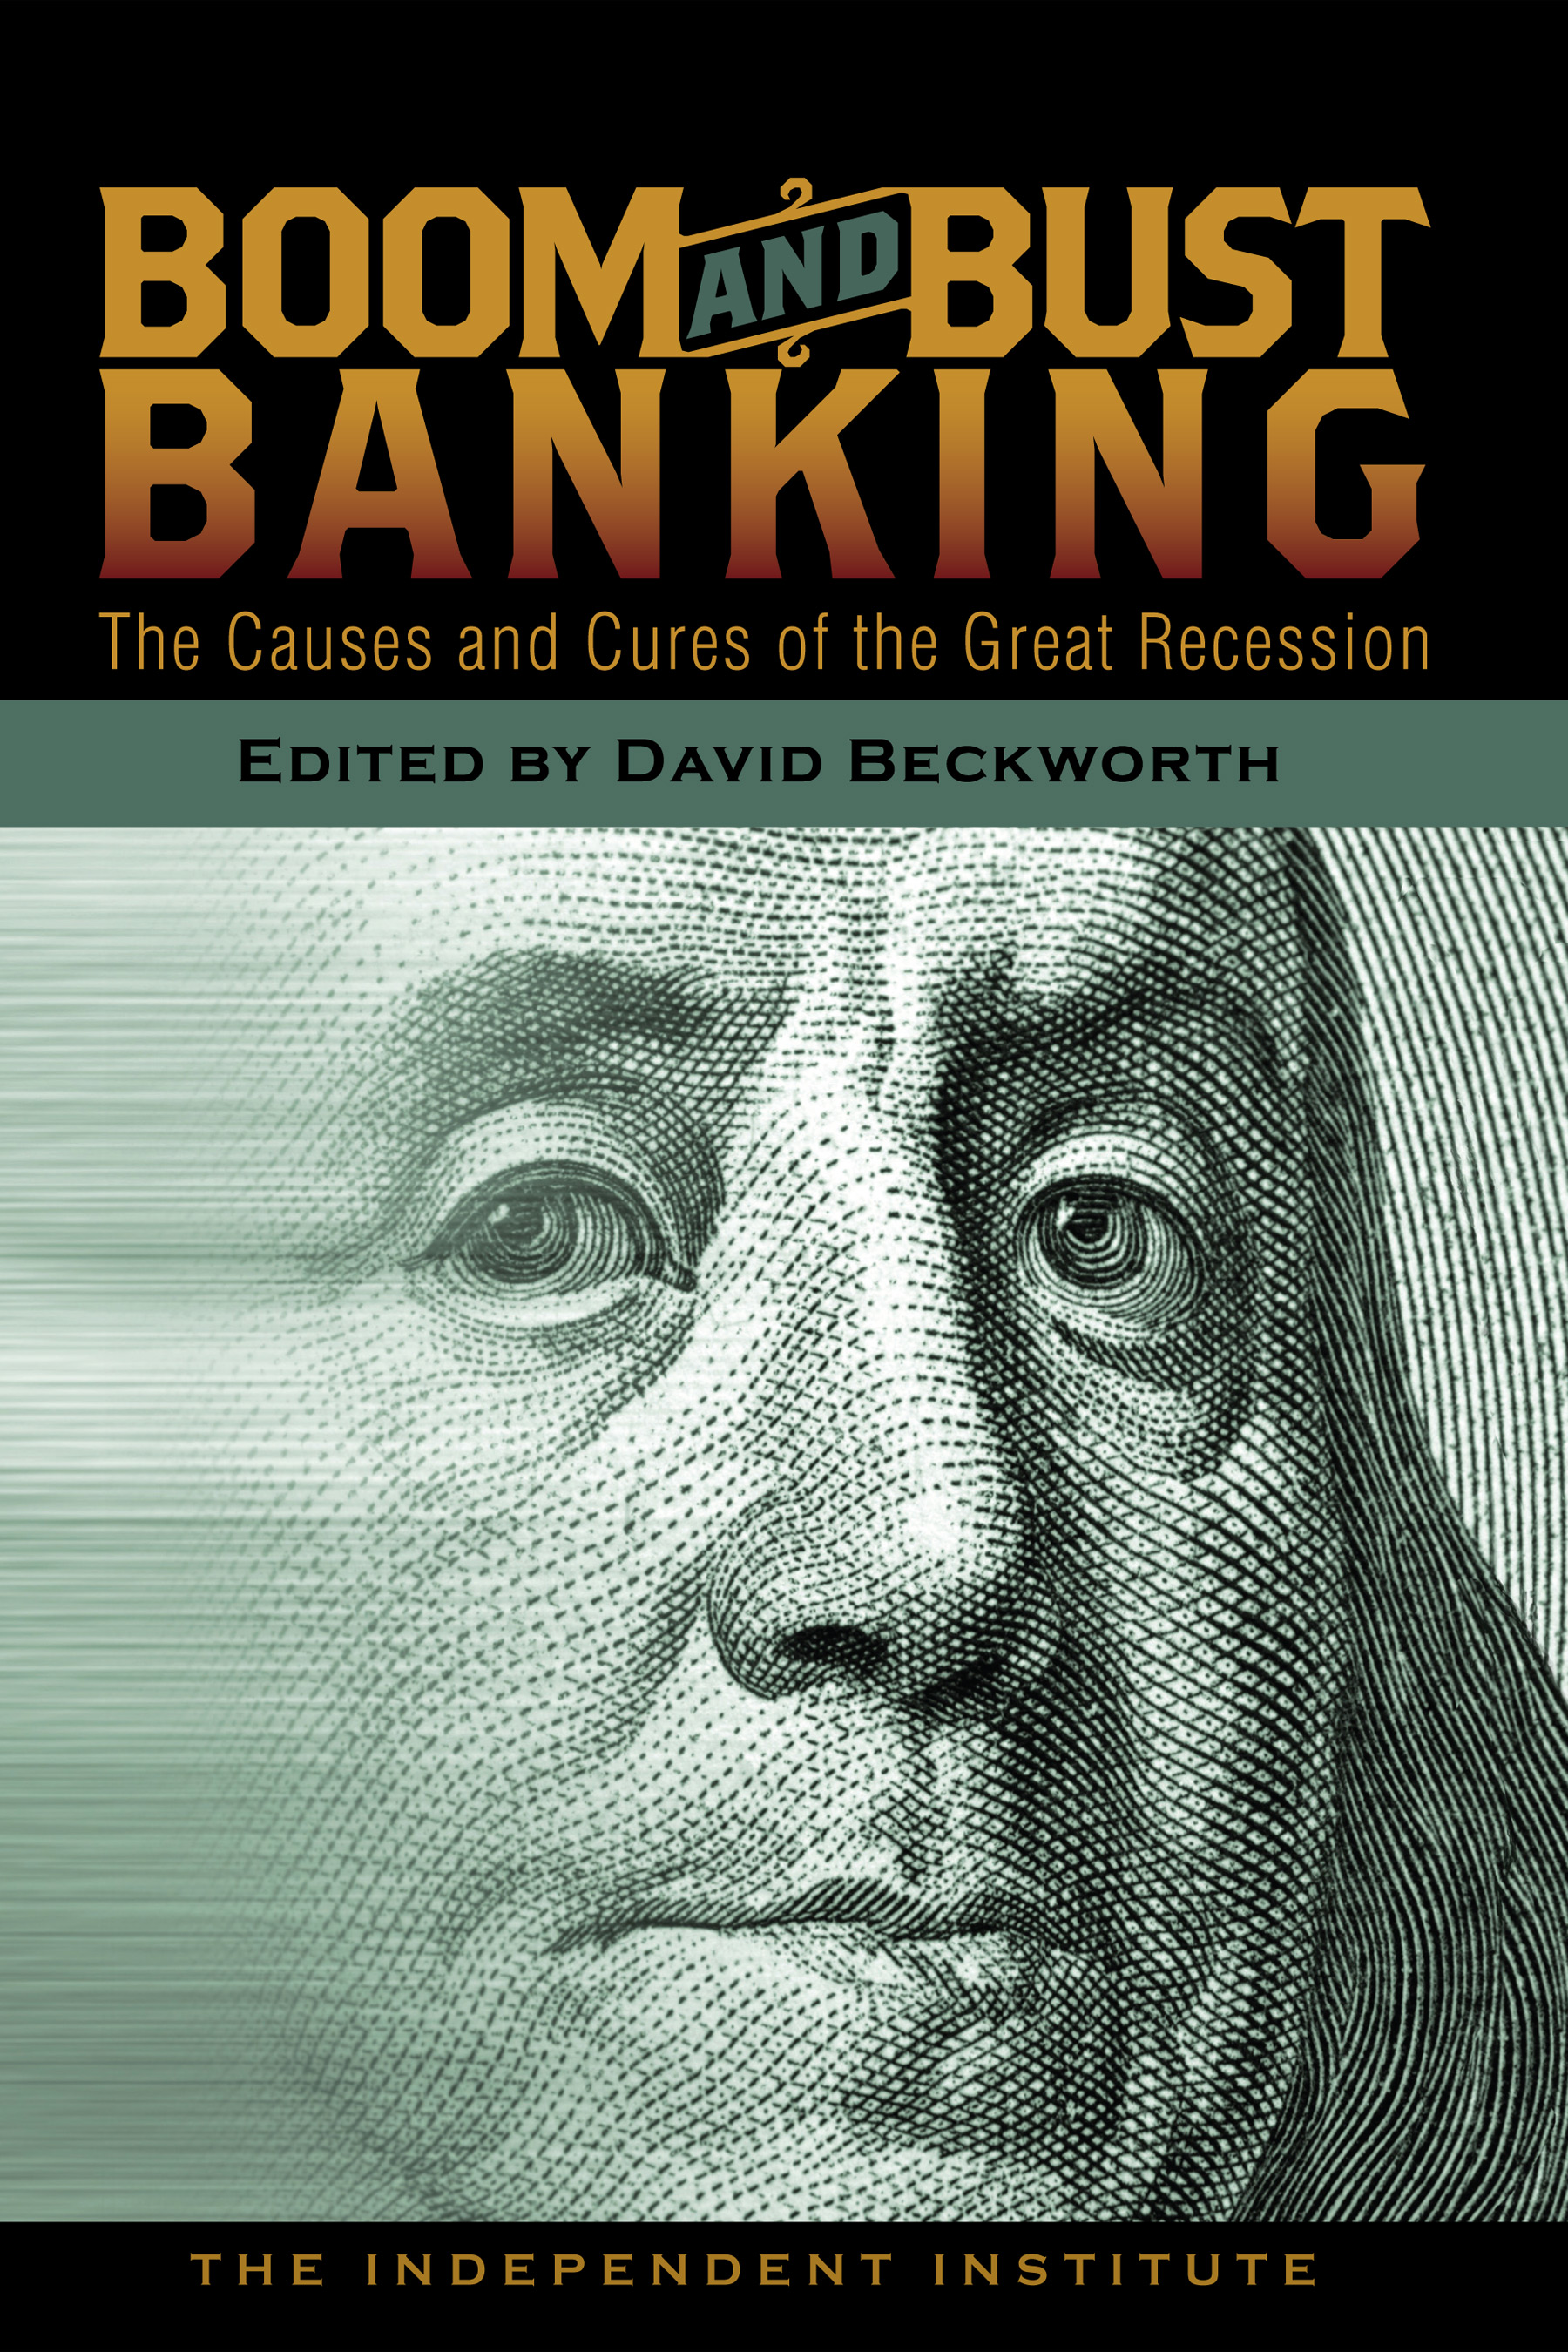 boom and bust banking  the causes and cures of the great